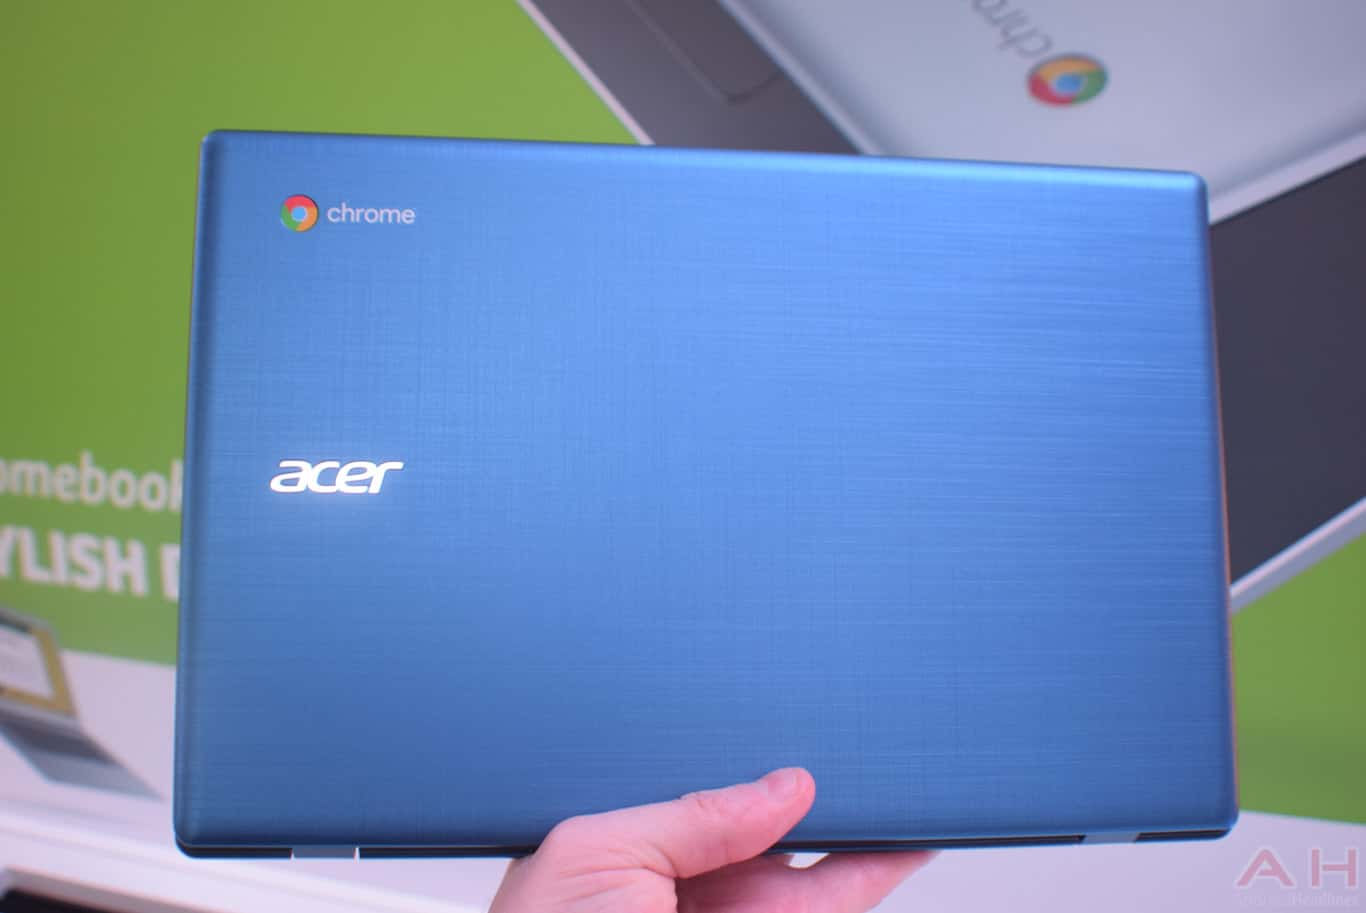 Acer Chromebook 11 CES 2018 AM AH 0007